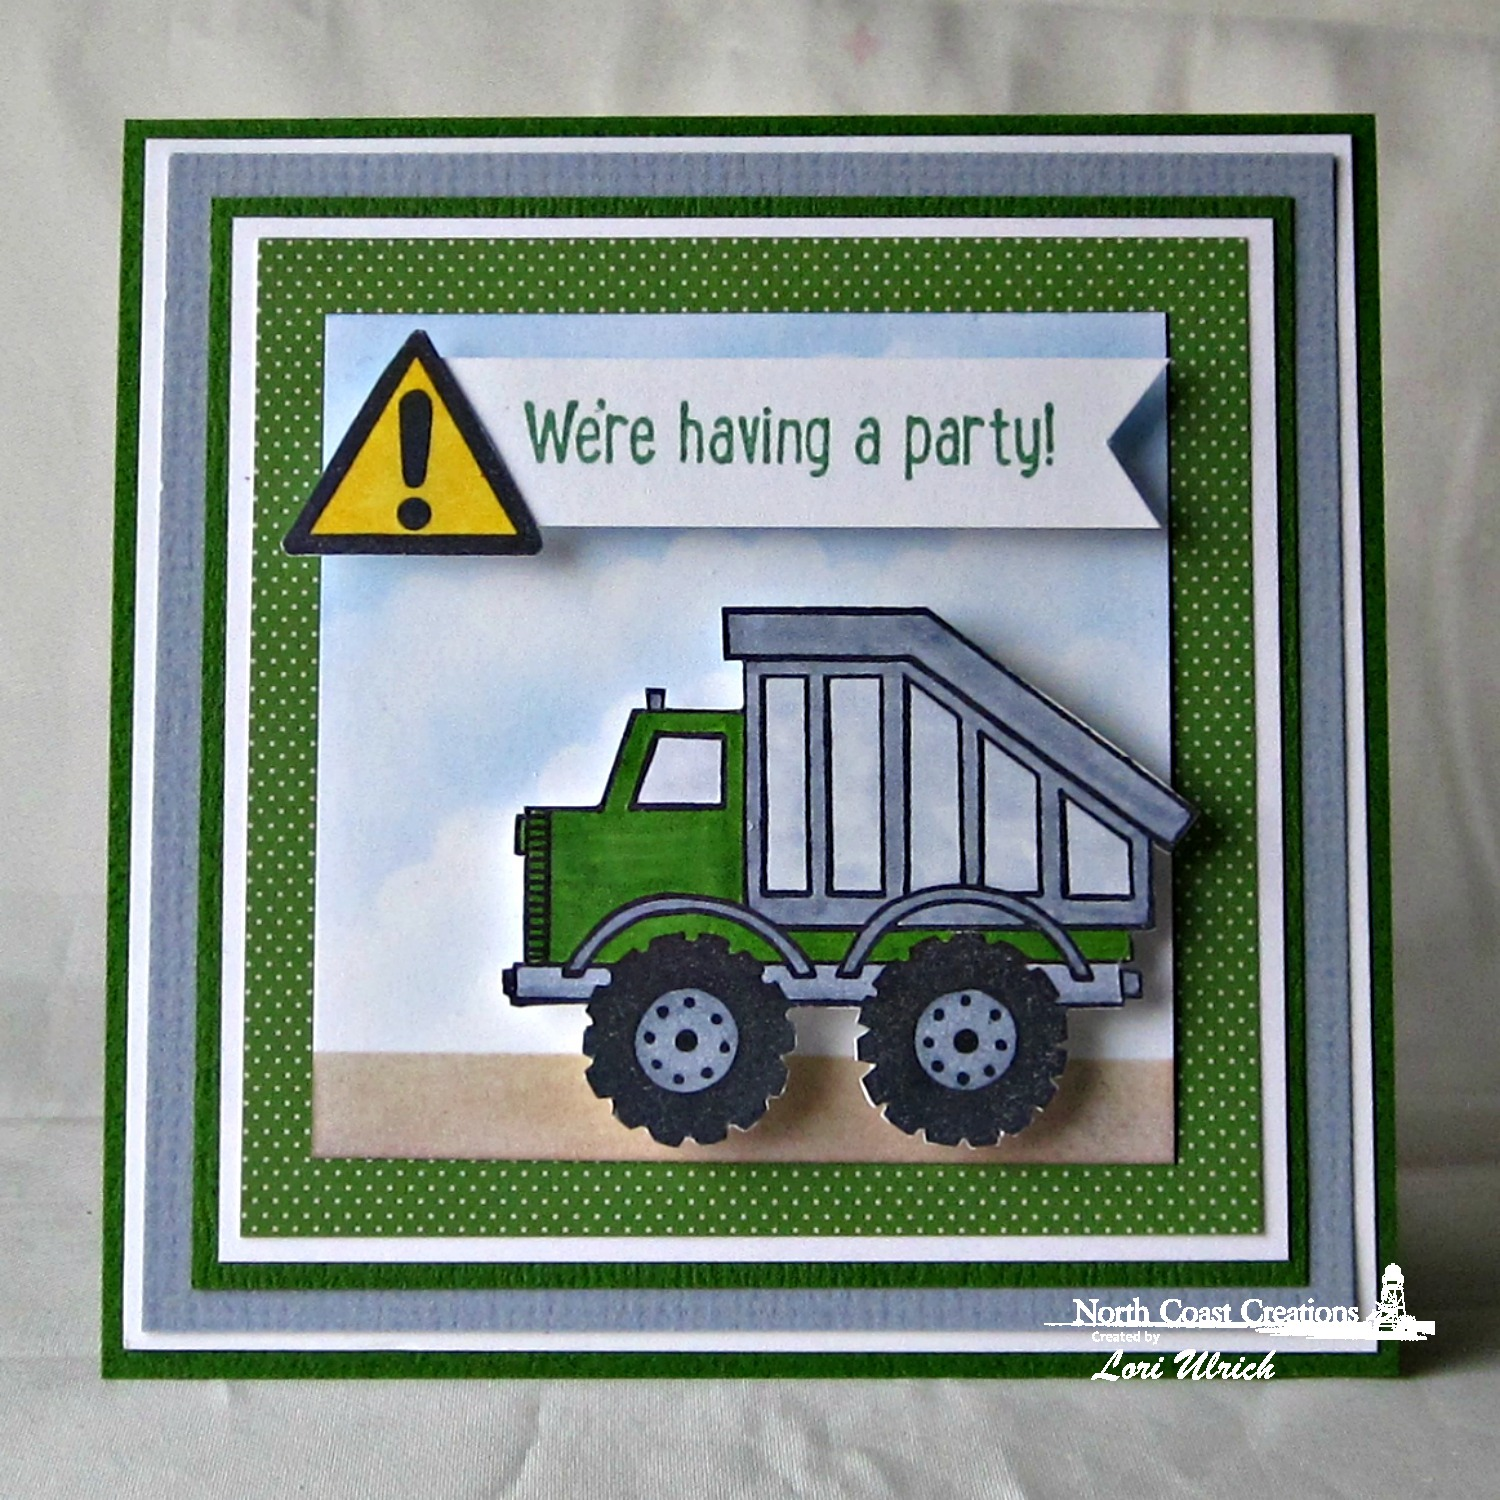 Stamps - North Coast Creations Dump Truck Birthday